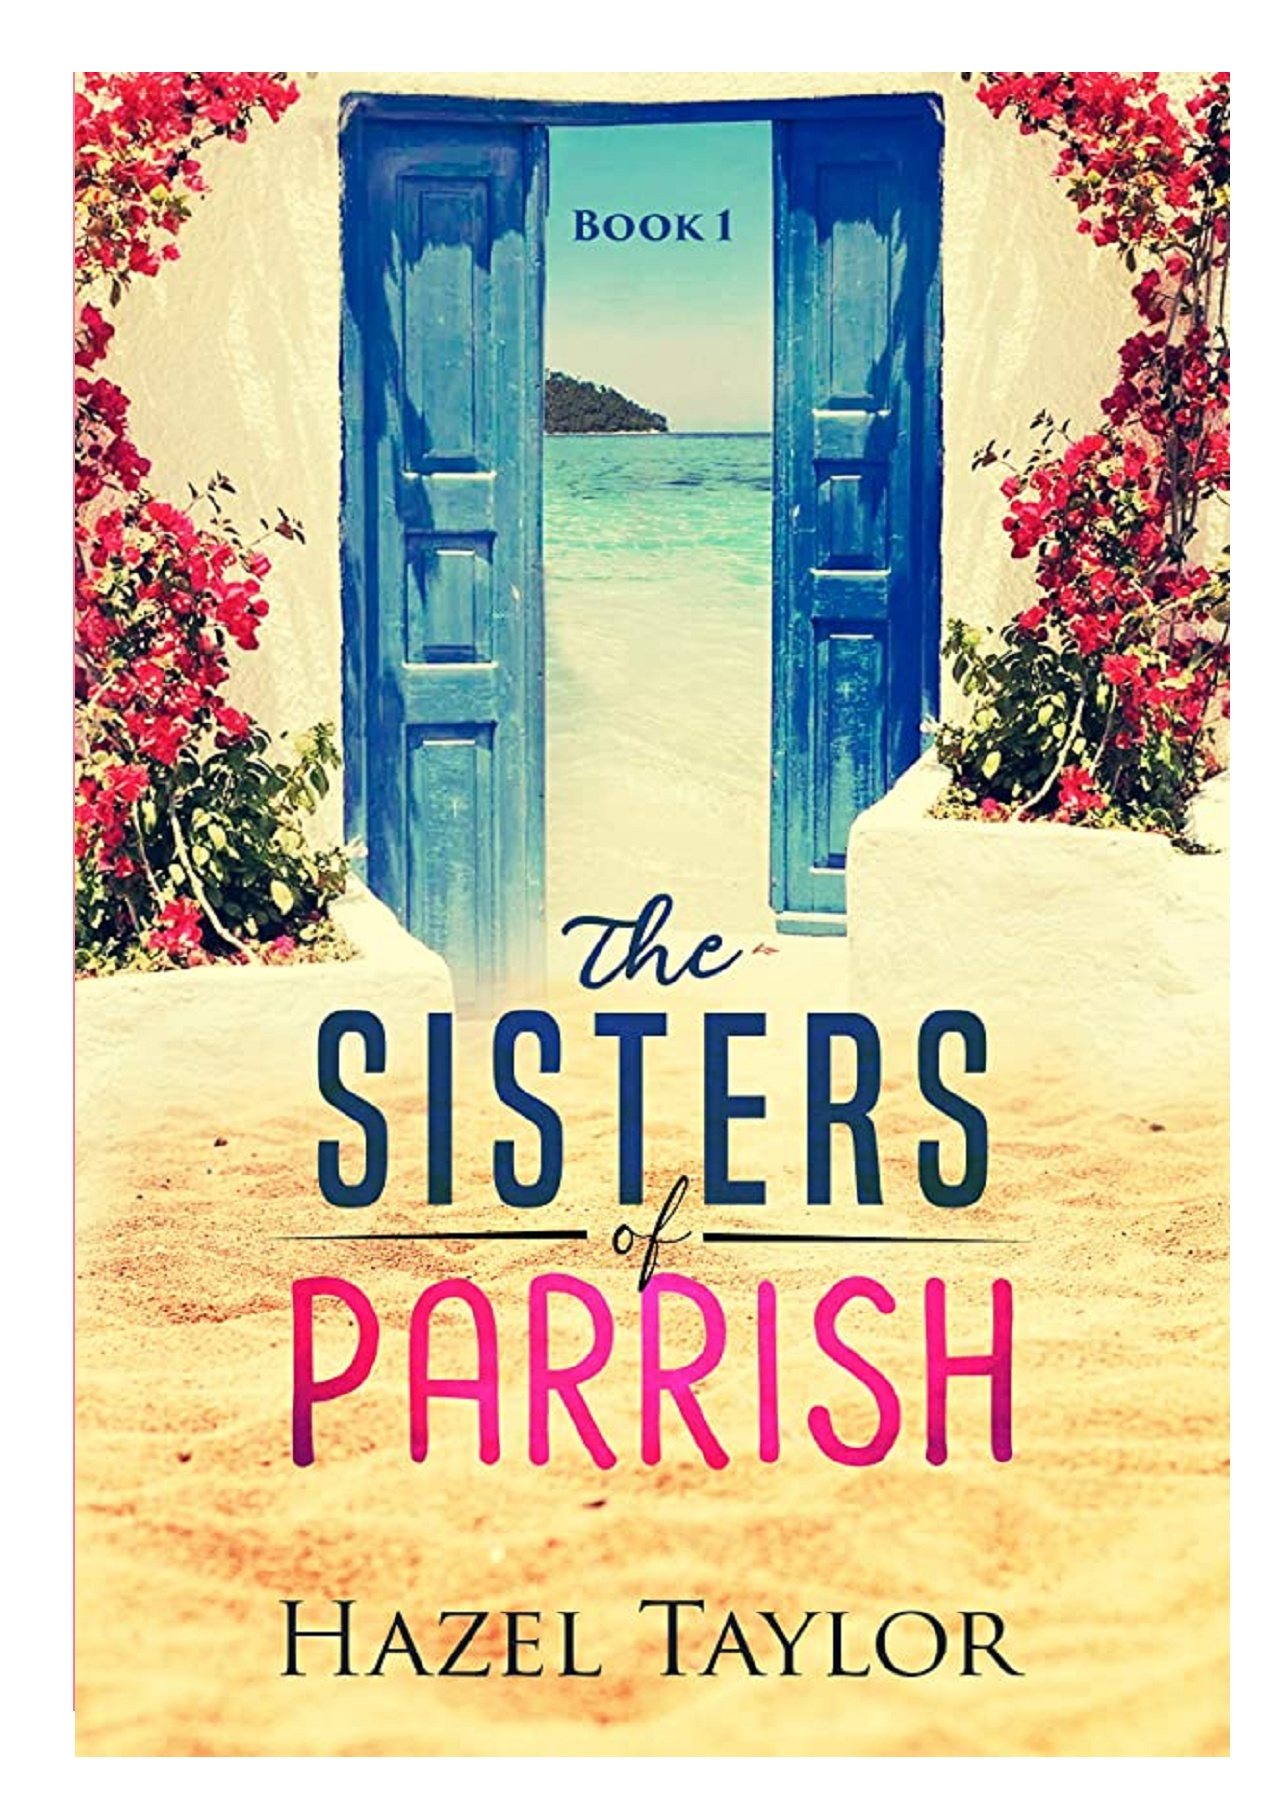 The unlikely adventures of the shergill sisters pdf free download